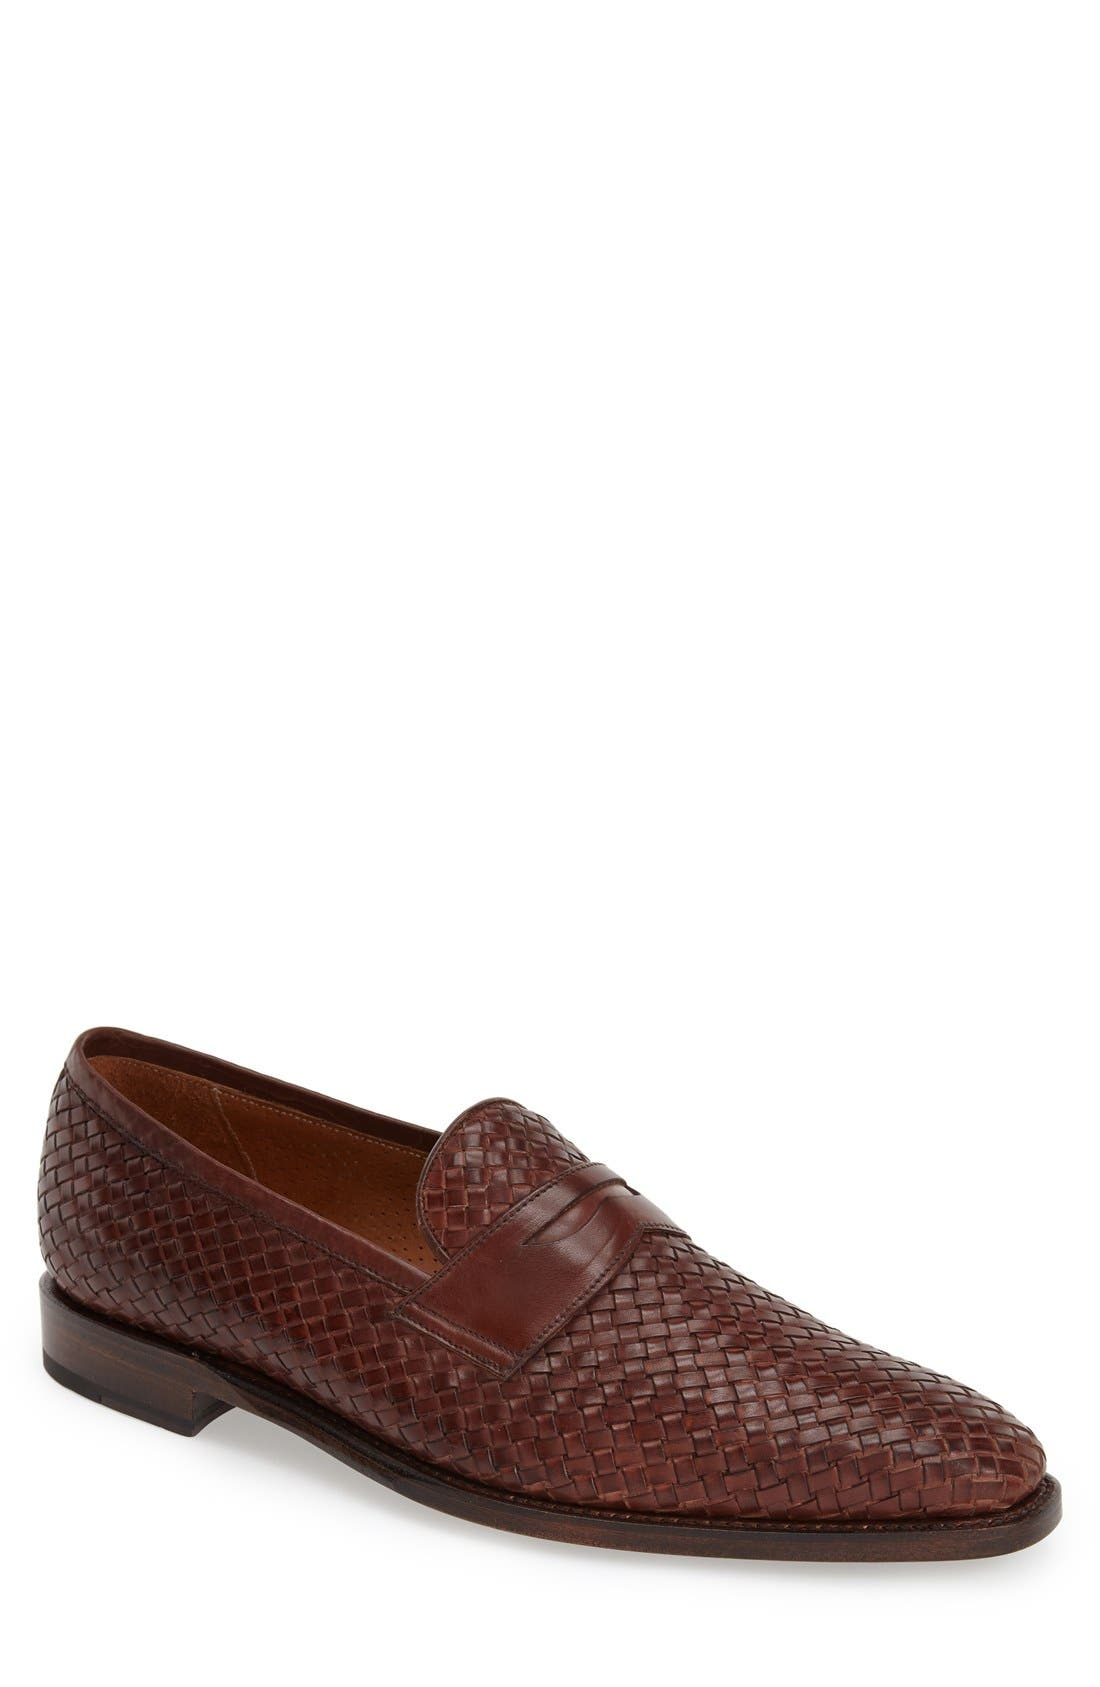 Boots 'Saratoga' Penny Loafer,                             Main thumbnail 1, color,                             Brown